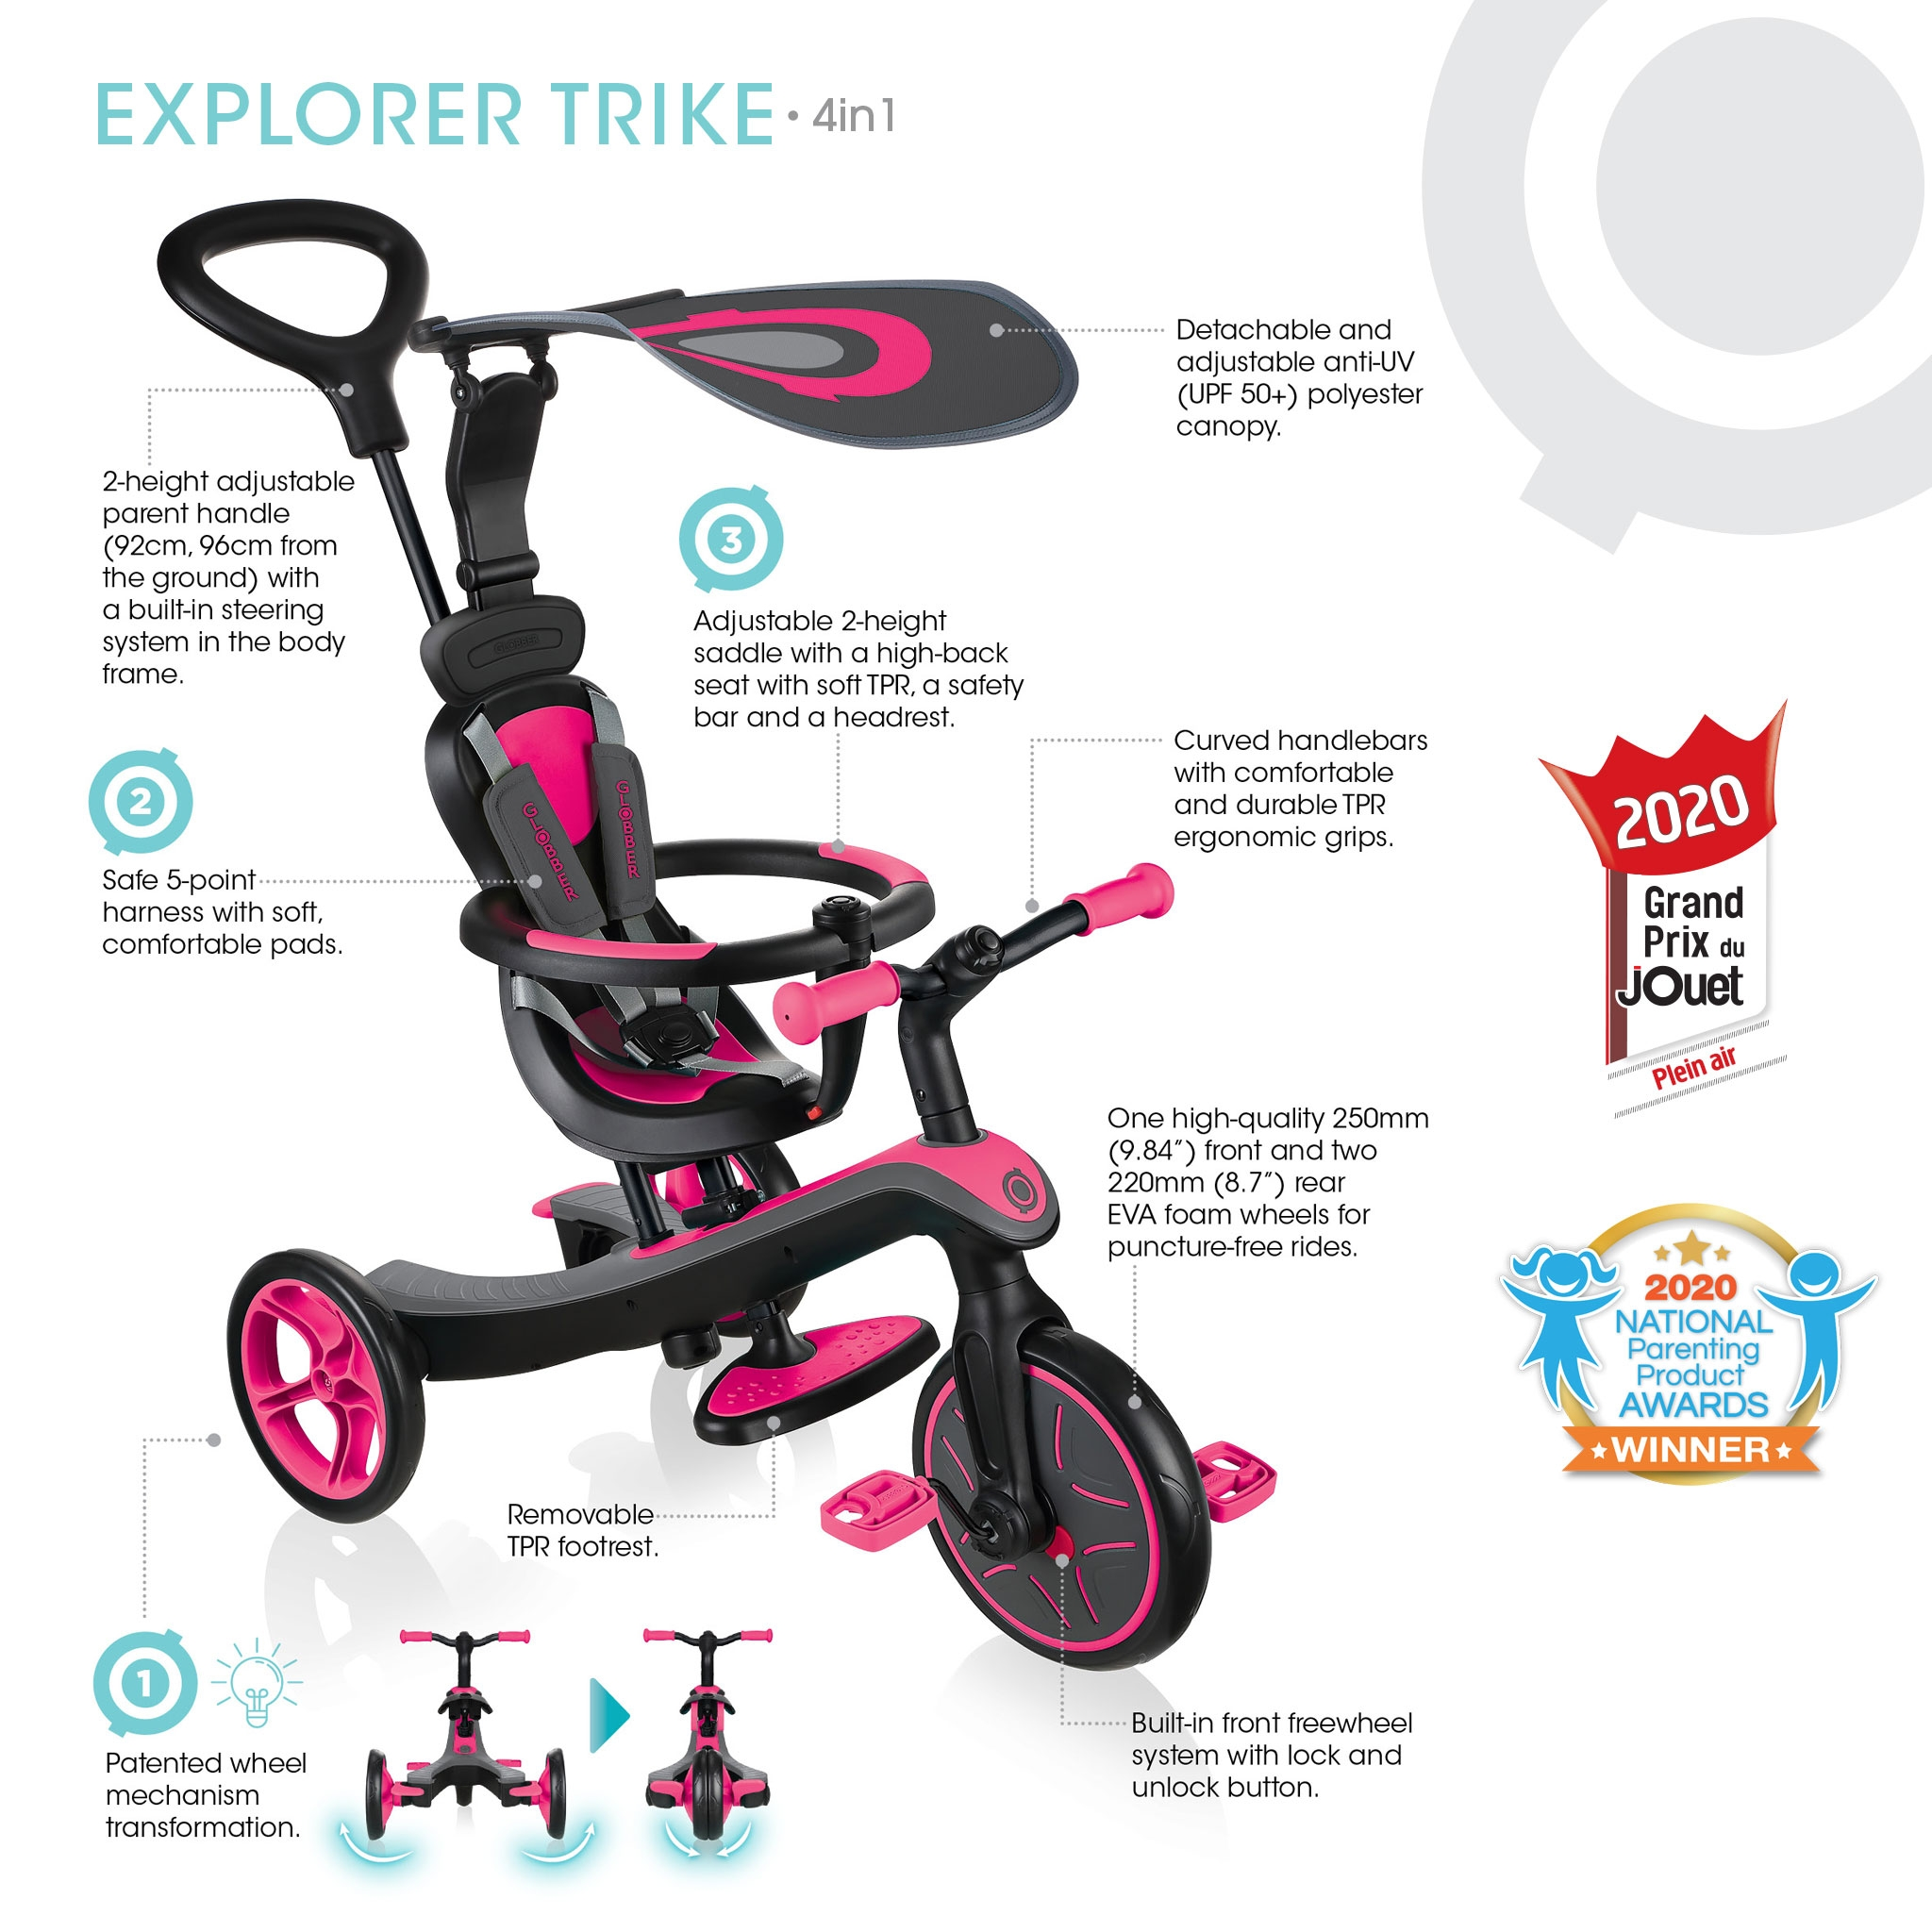 Globber-EXPLORER-TRIKE-4in1-all-in-one-baby-tricycle-and-kids-balance-bike-with-tool-less-design